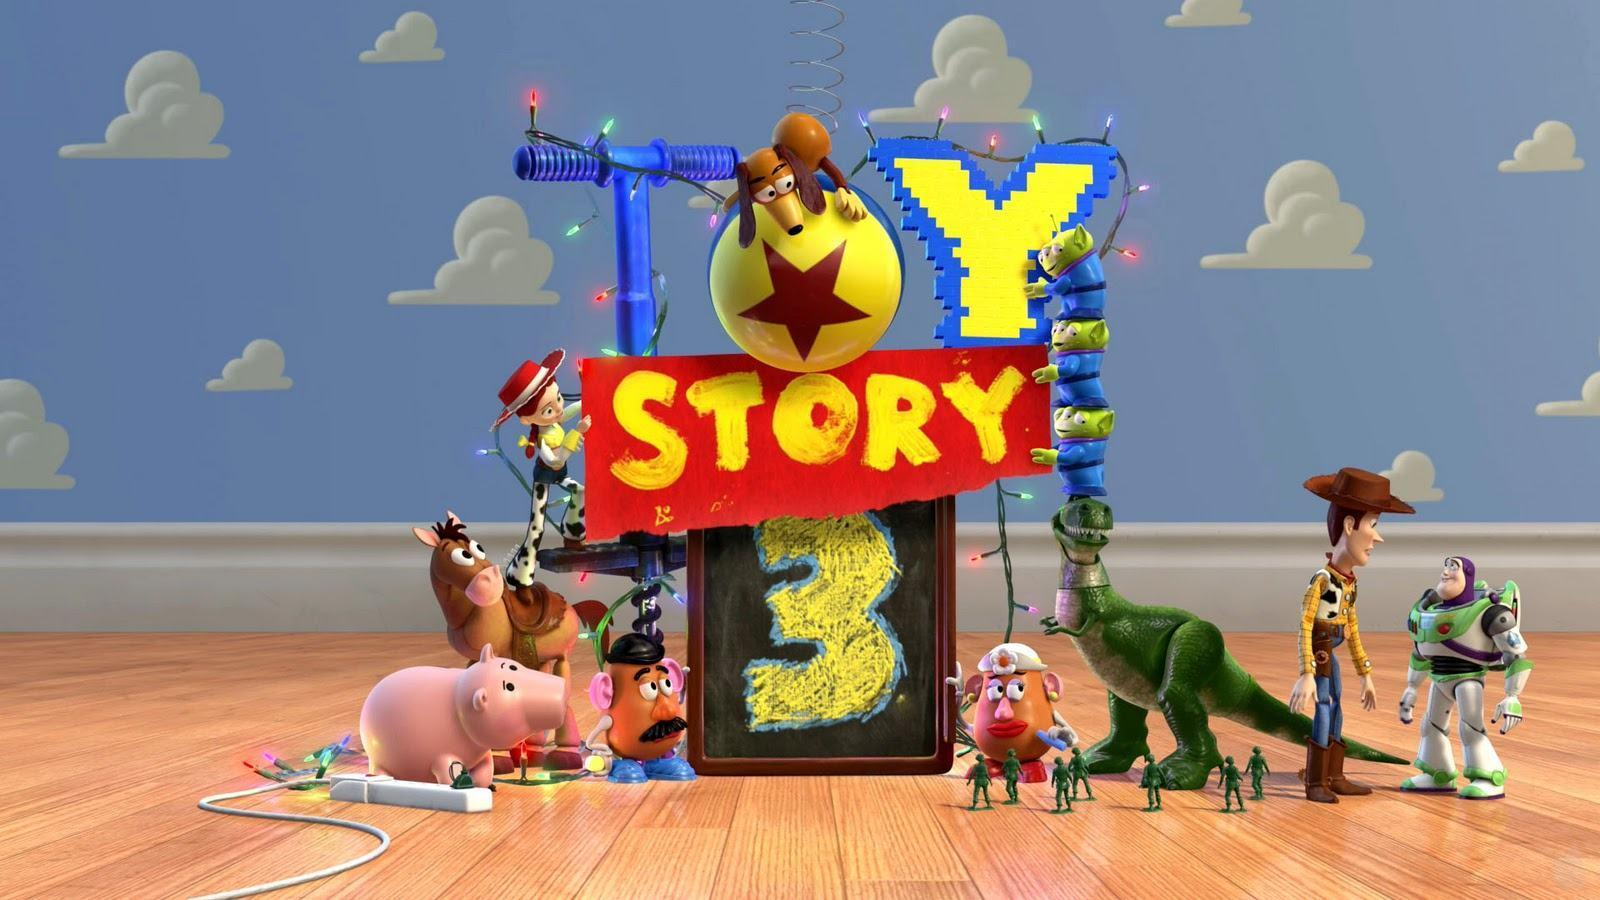 Disney Pixar Toy Story Cartoon Cahracters Wallpapers HD Wallpapers